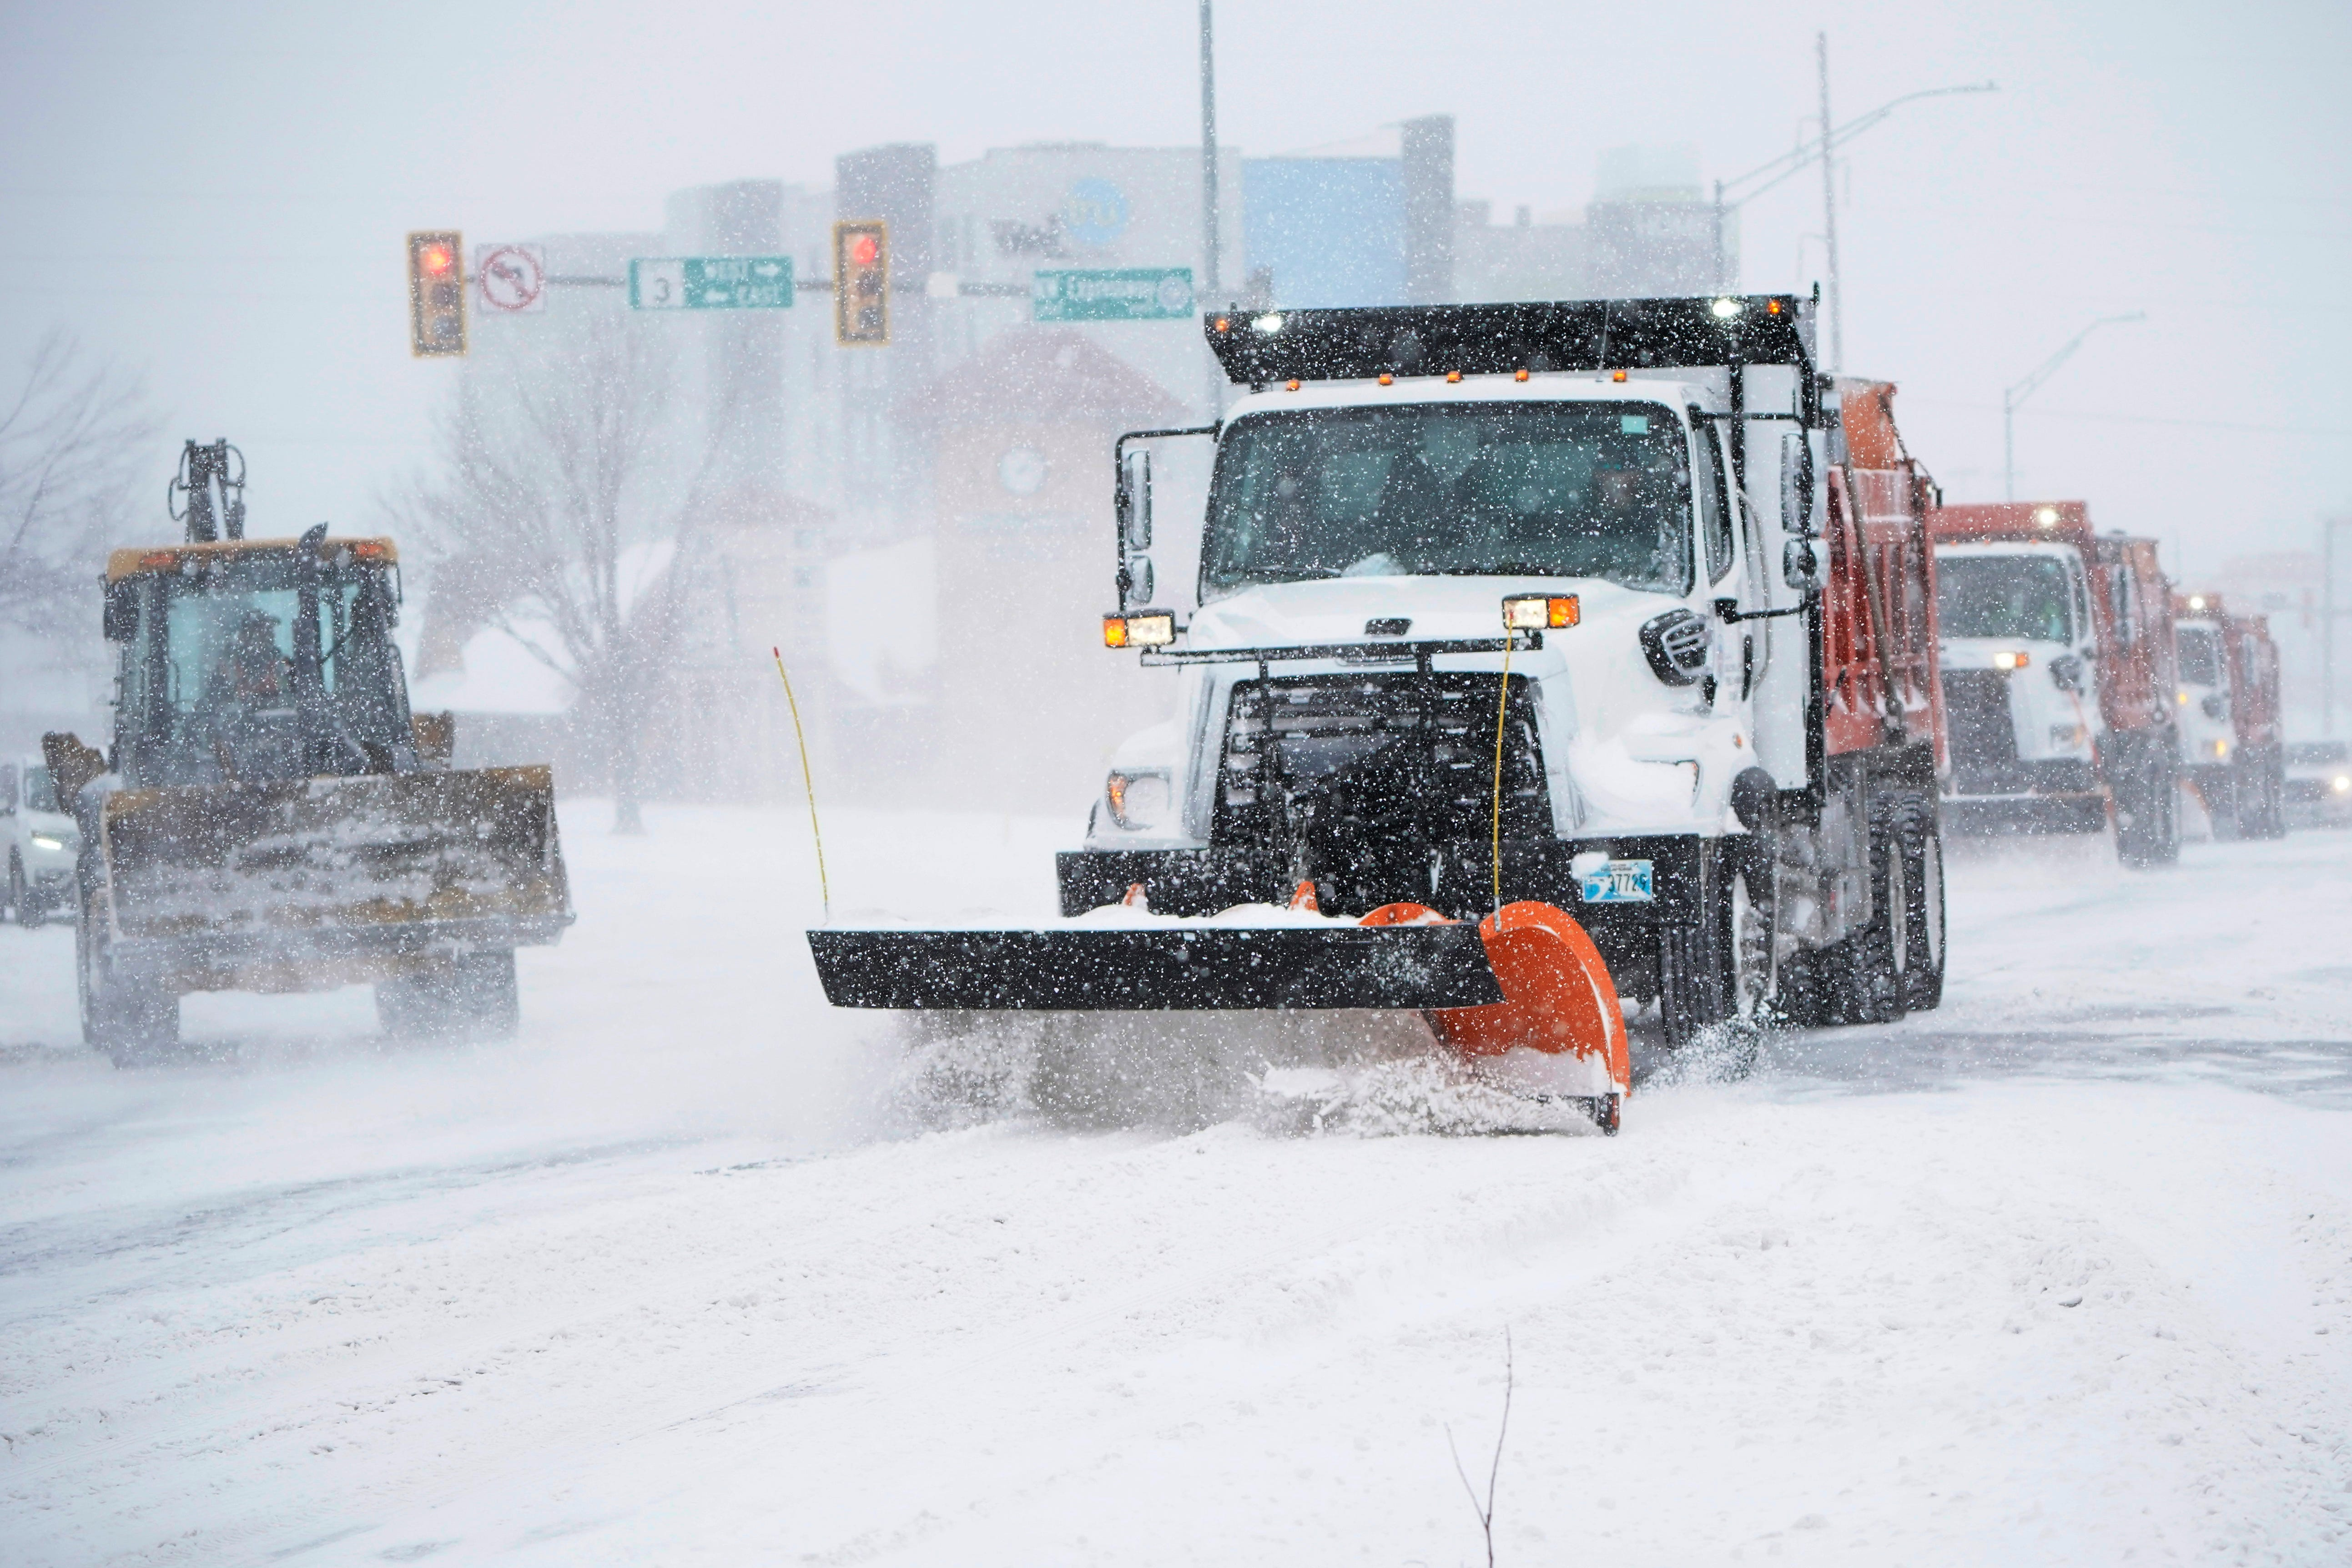 3,000+ flights canceled Monday as winter storm pounds southern US with snow and ice